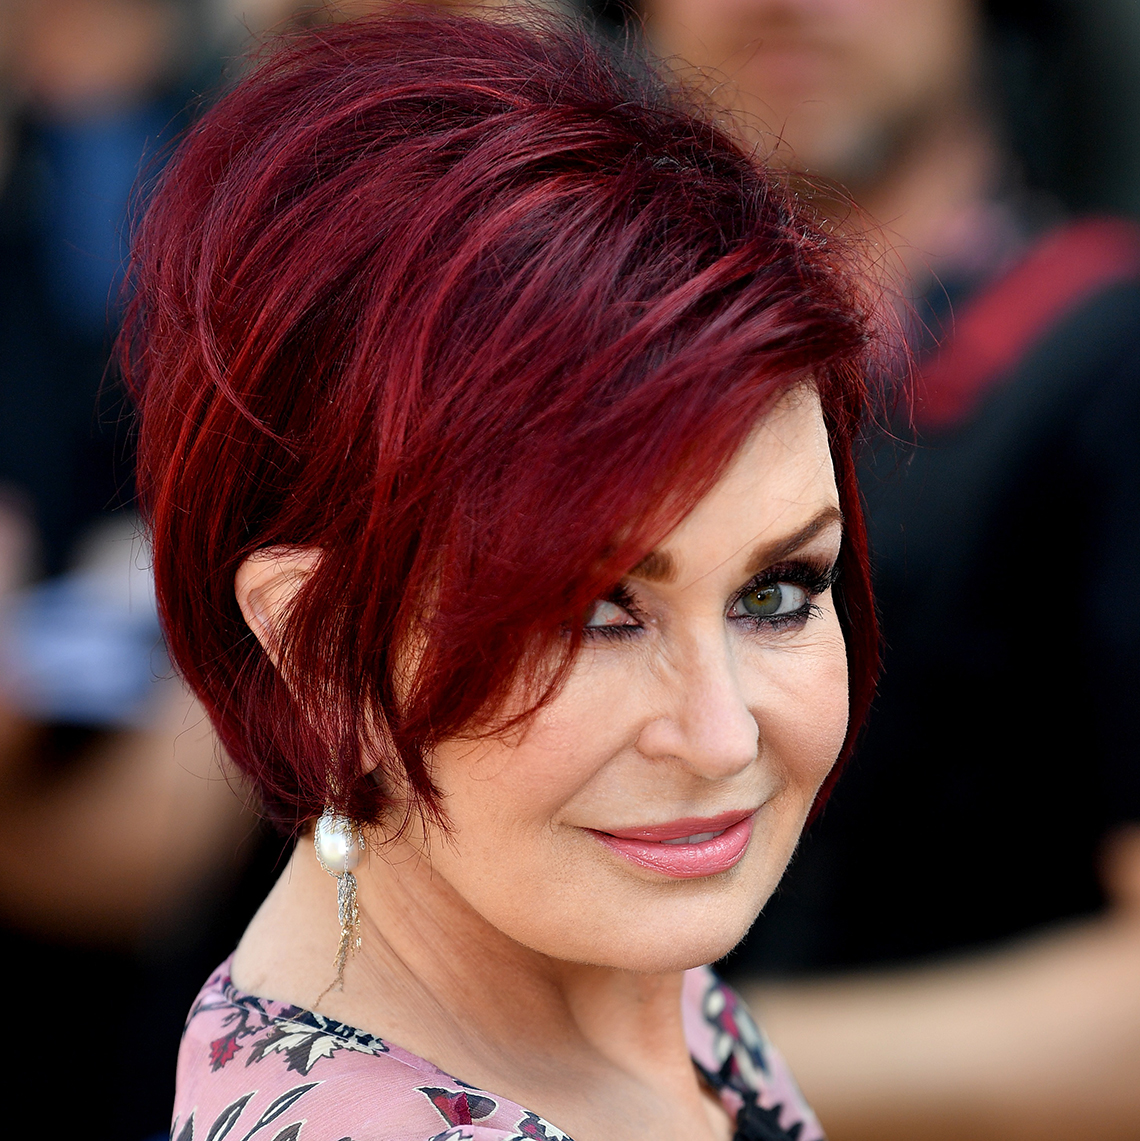 Sharon Osbourne makes a statement with her red dyed hair.